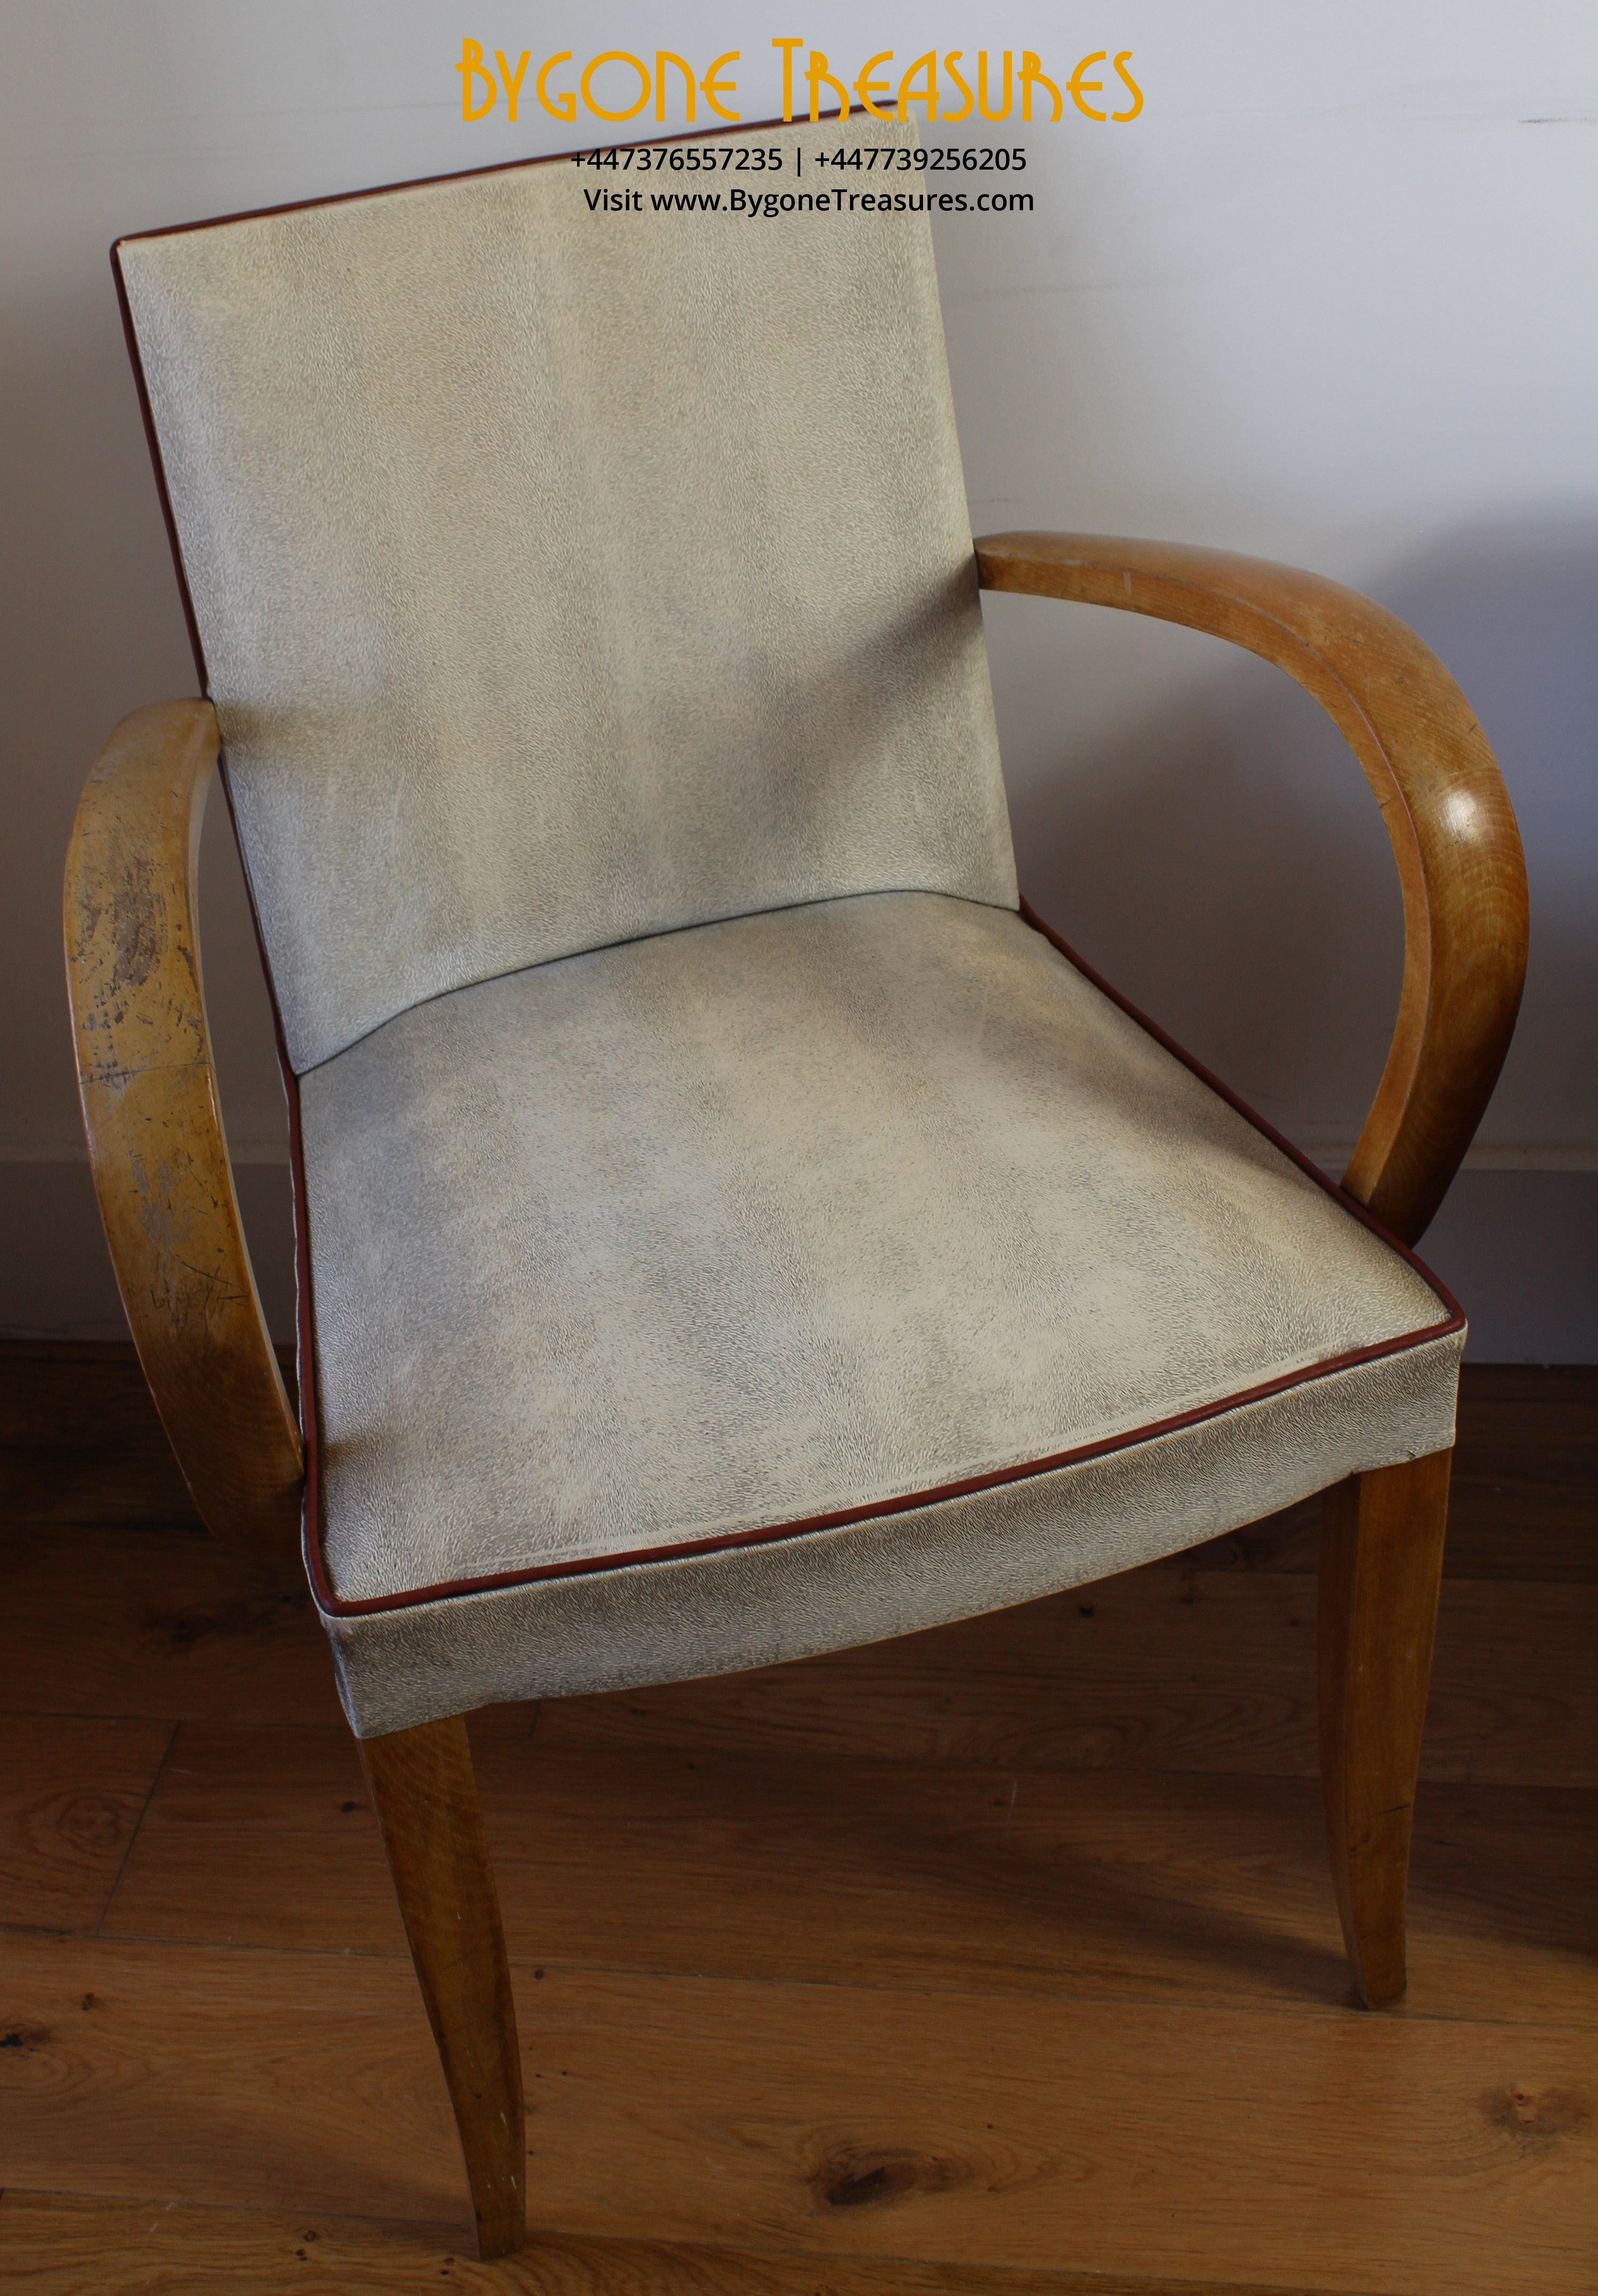 Original and complete pair of 1940s Bridge Chairs in white vinyl and deep burgundy piping (1)